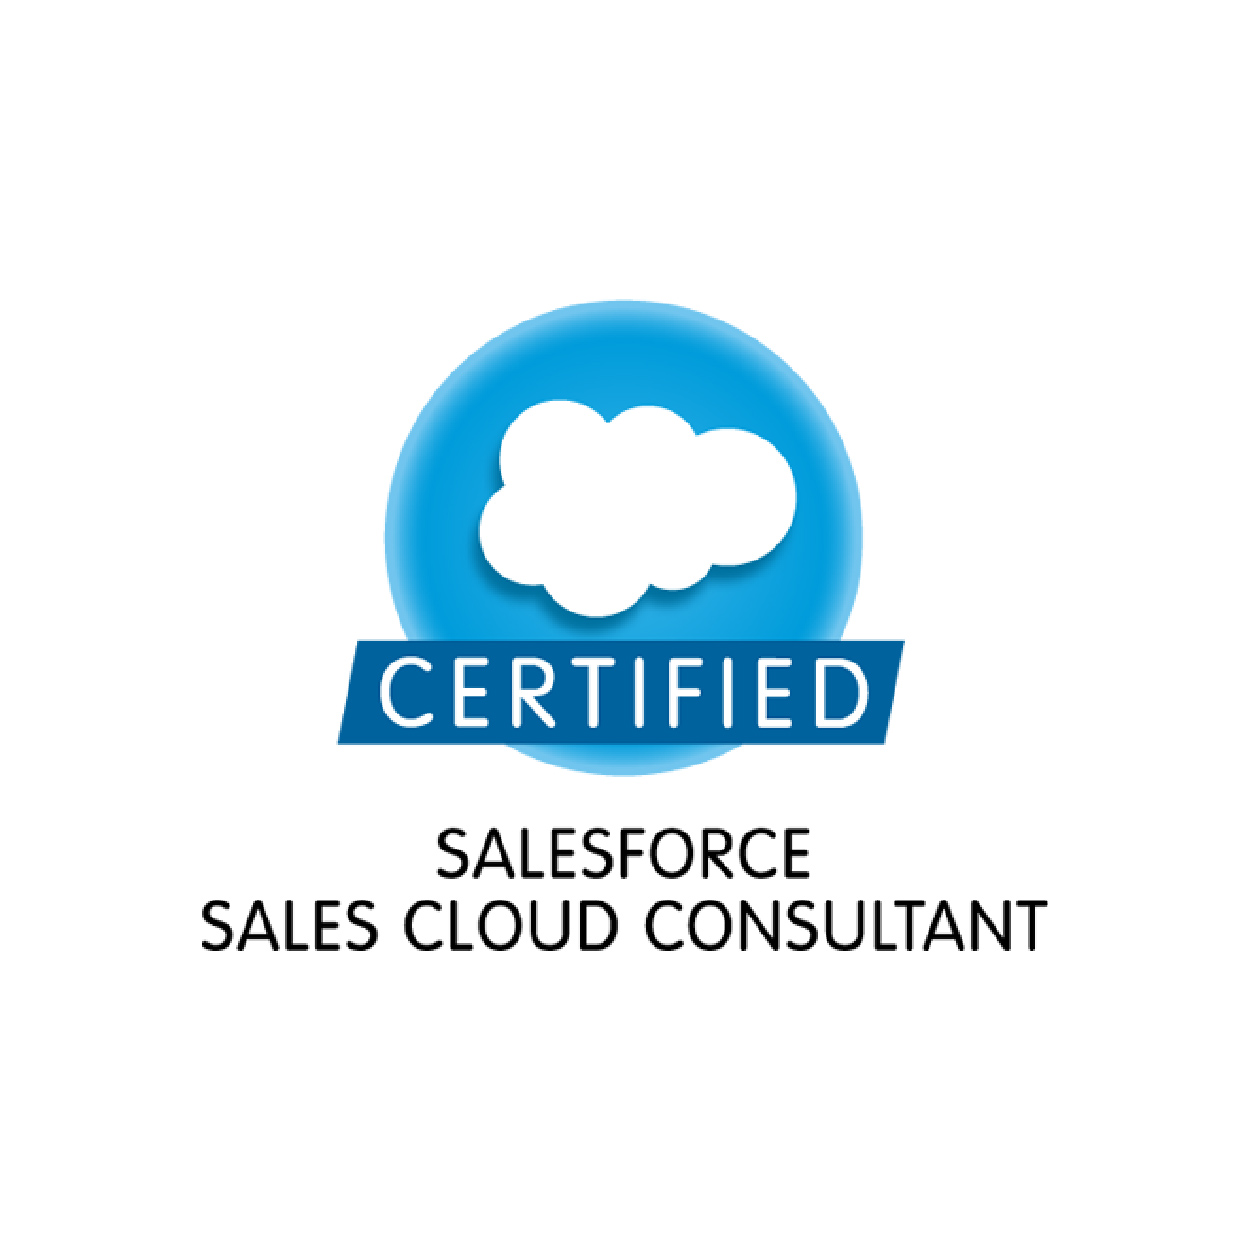 salesforce_certified-07.jpg